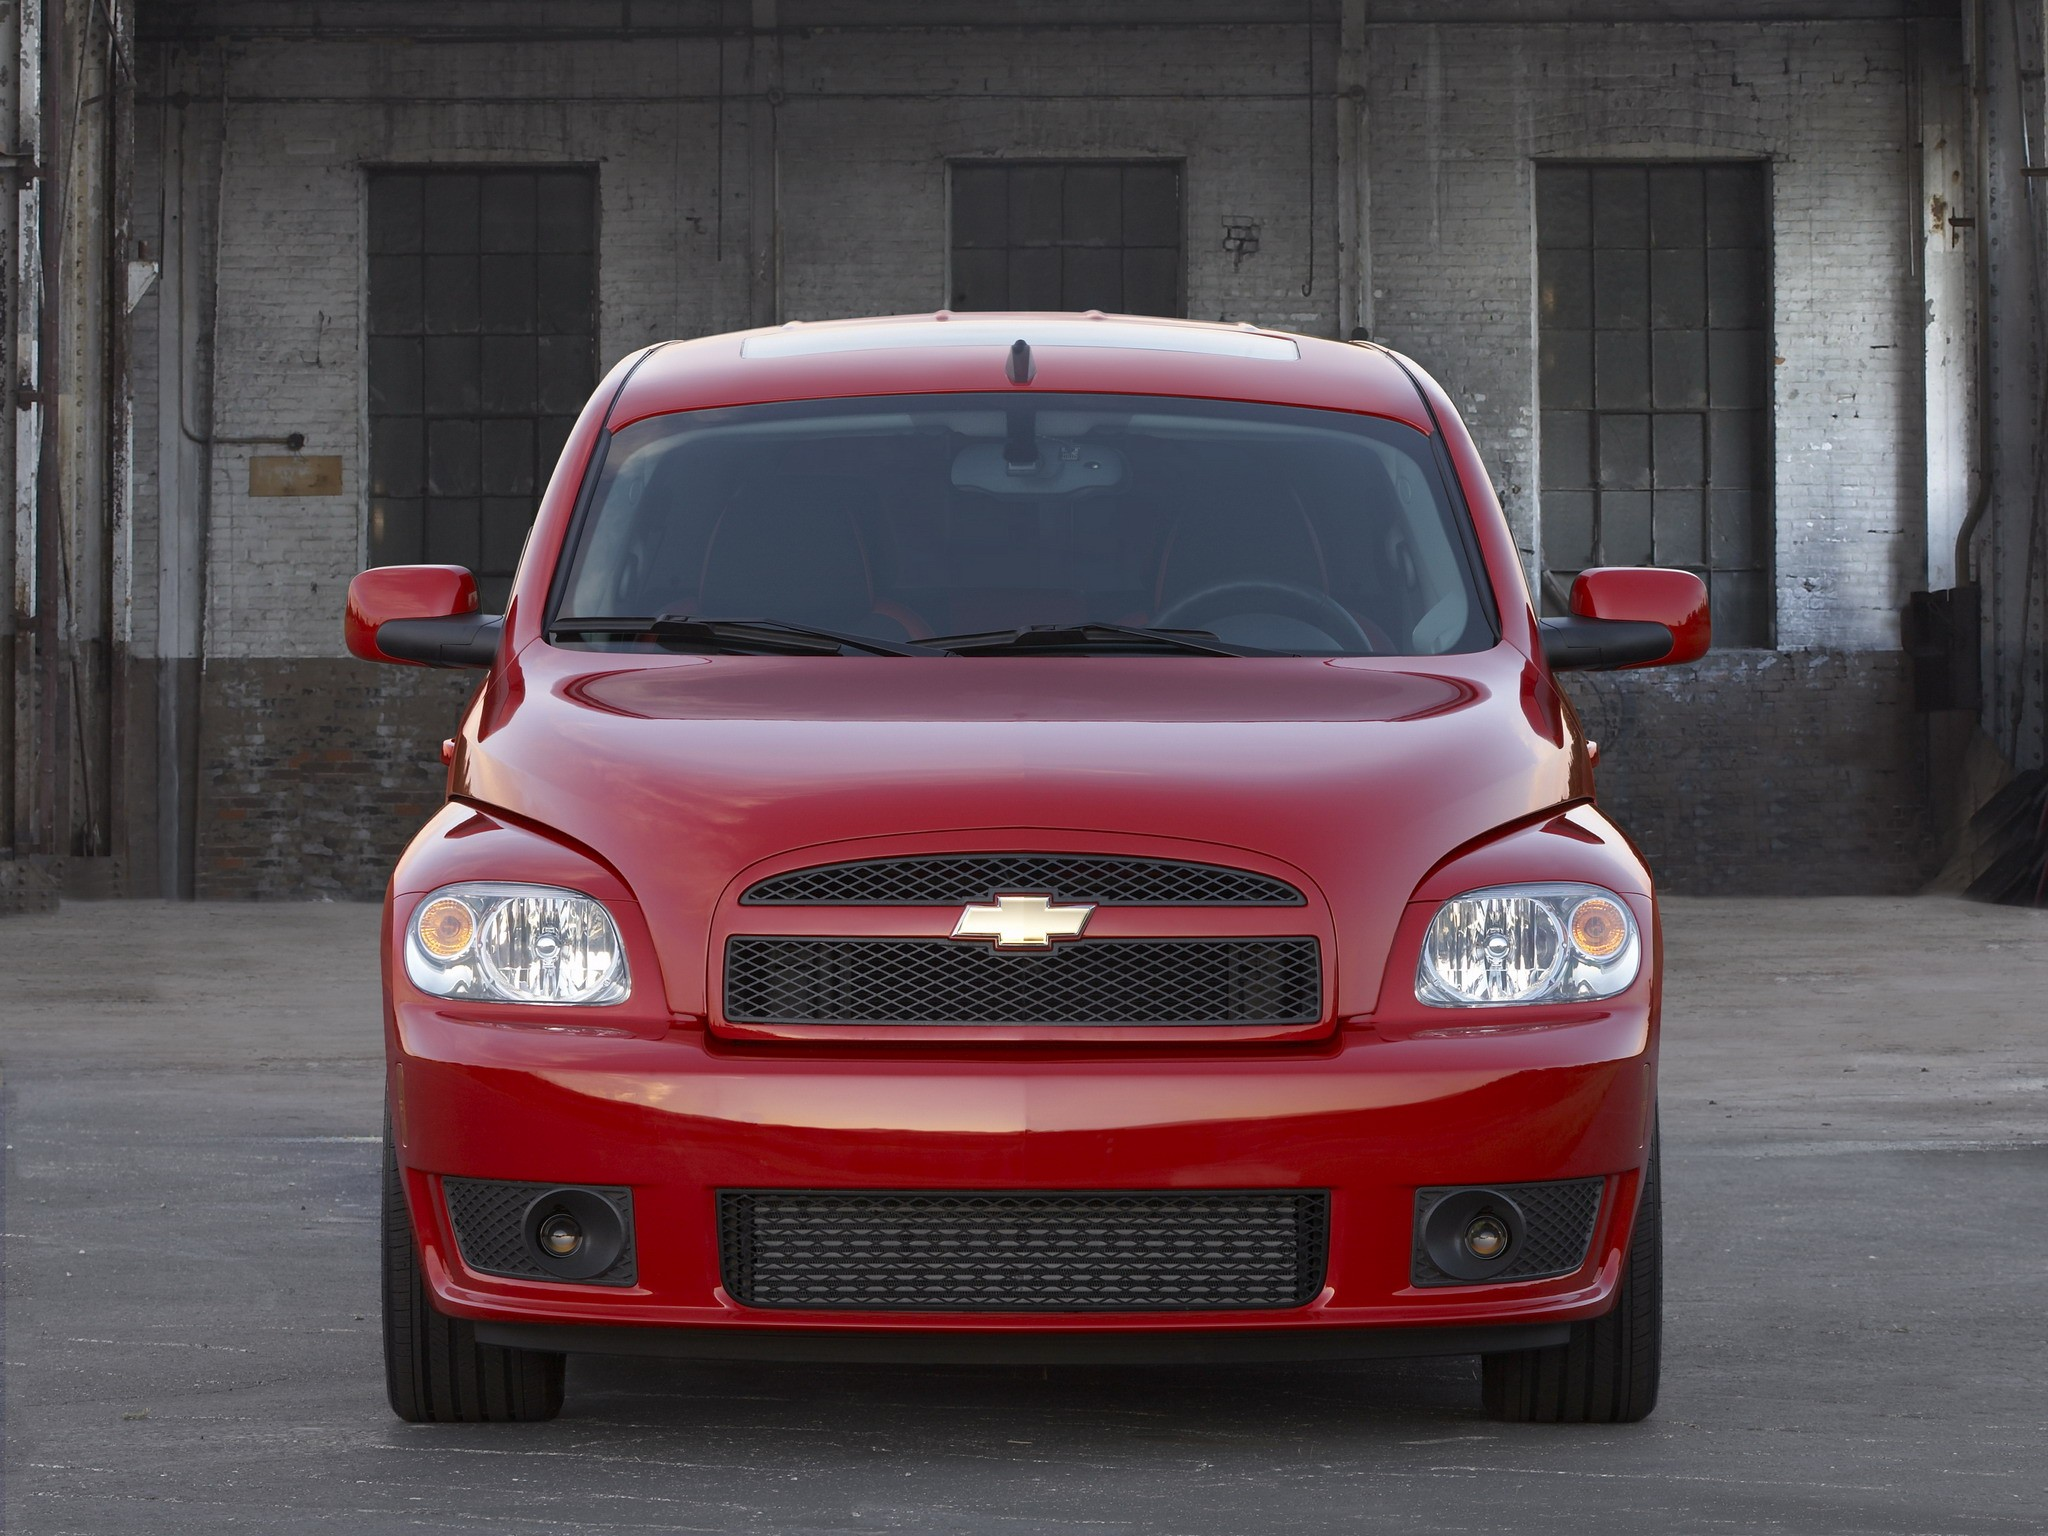 CHEVROLET HHR SS specs & photos - 2007, 2008, 2009, 2010, 2011 - autoevolution